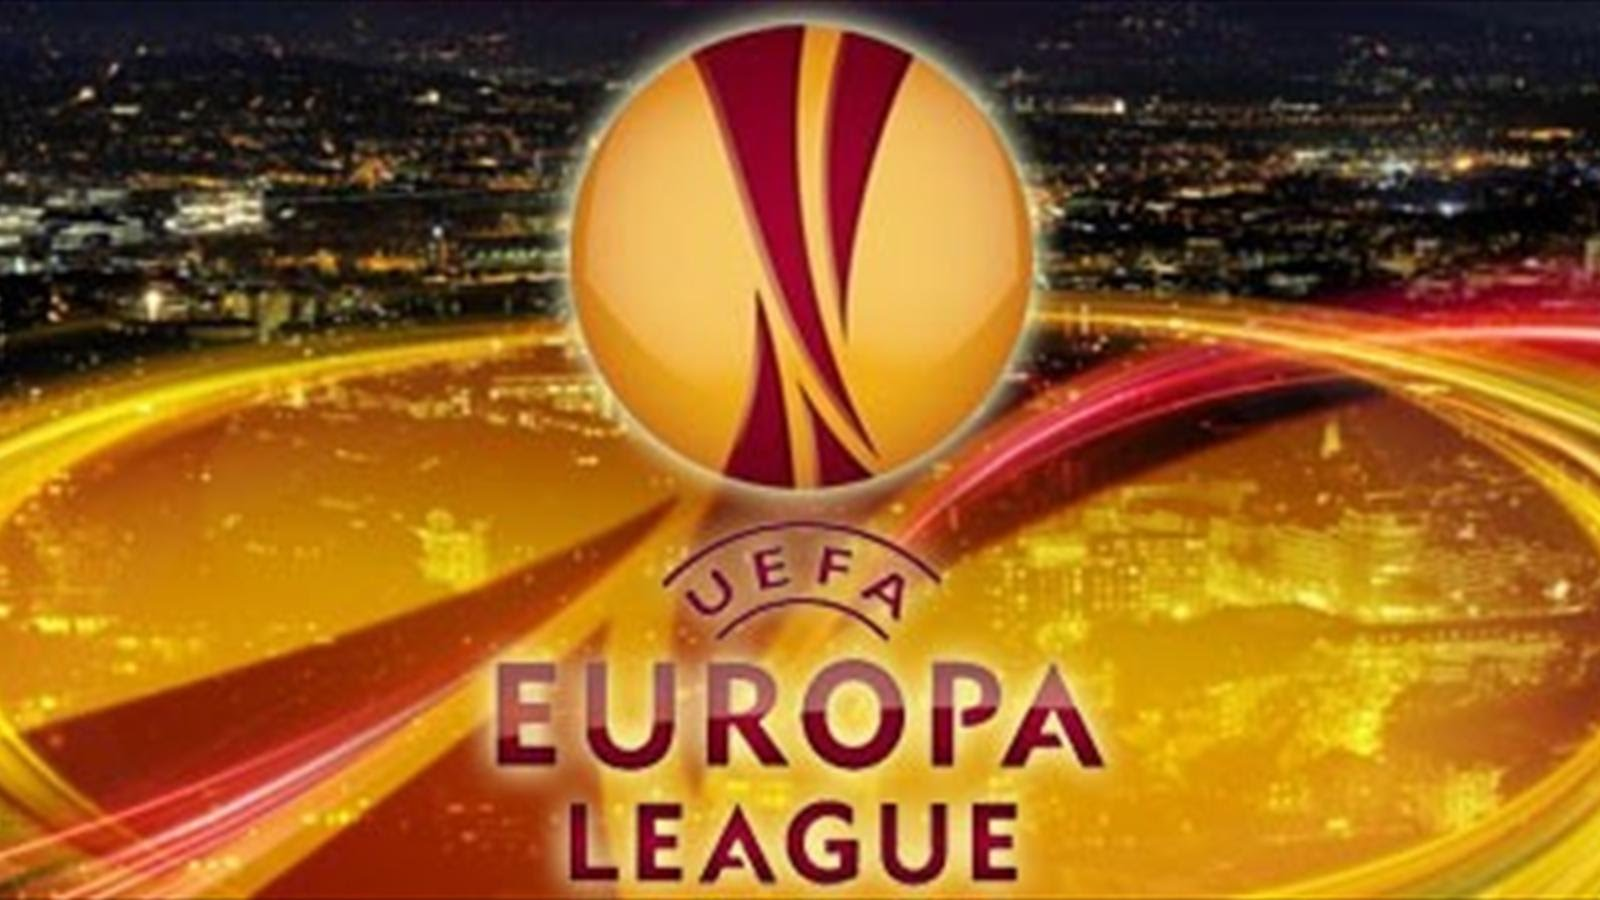 prediksi-pertandingan-basel-vs-belenenses-23-oktober-2015-europa-league